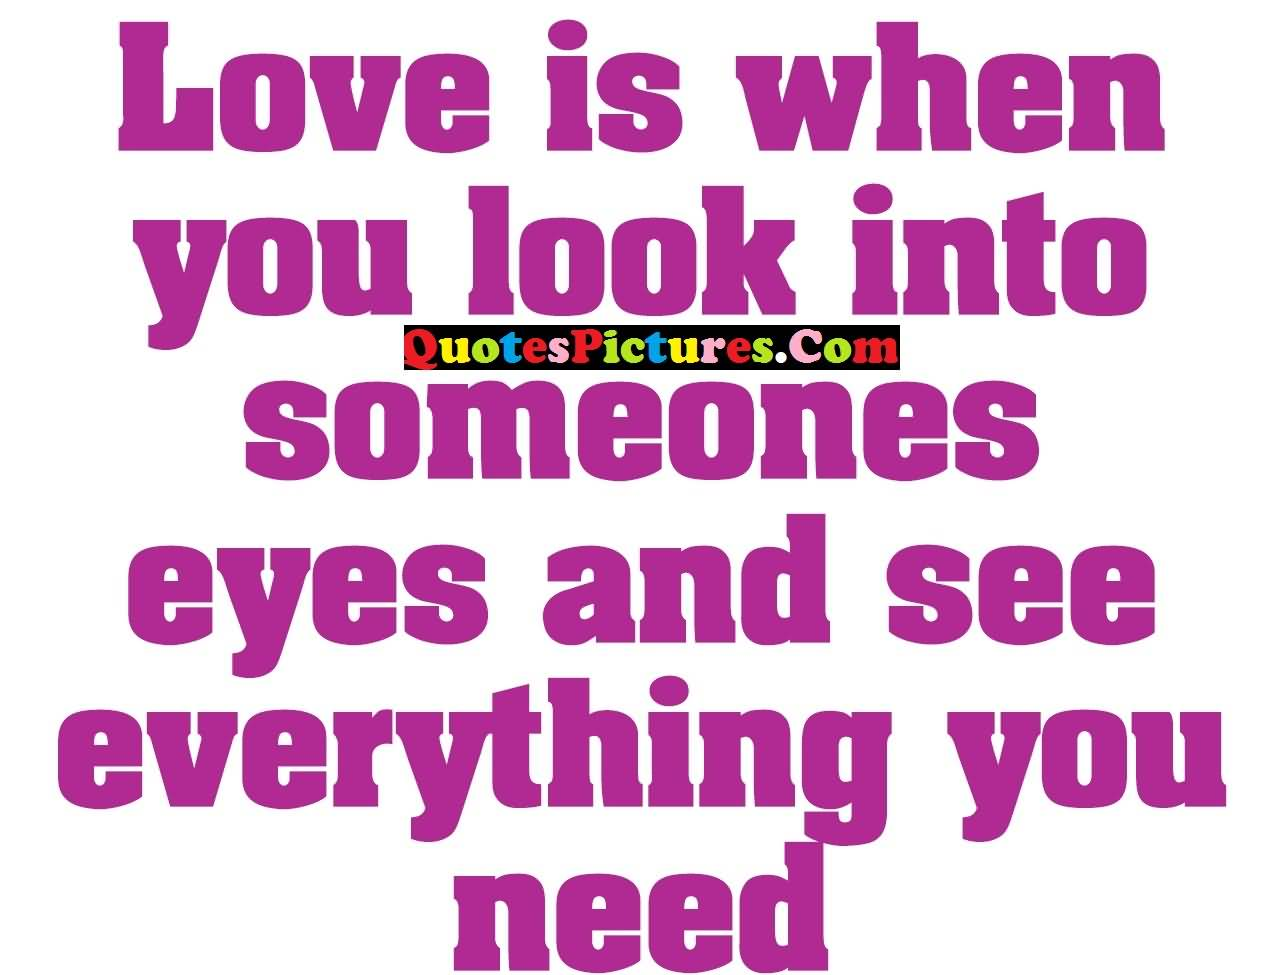 Best Ever Love Quote - Love Is When You Look Into Someones Eyes And See Everthing You Need